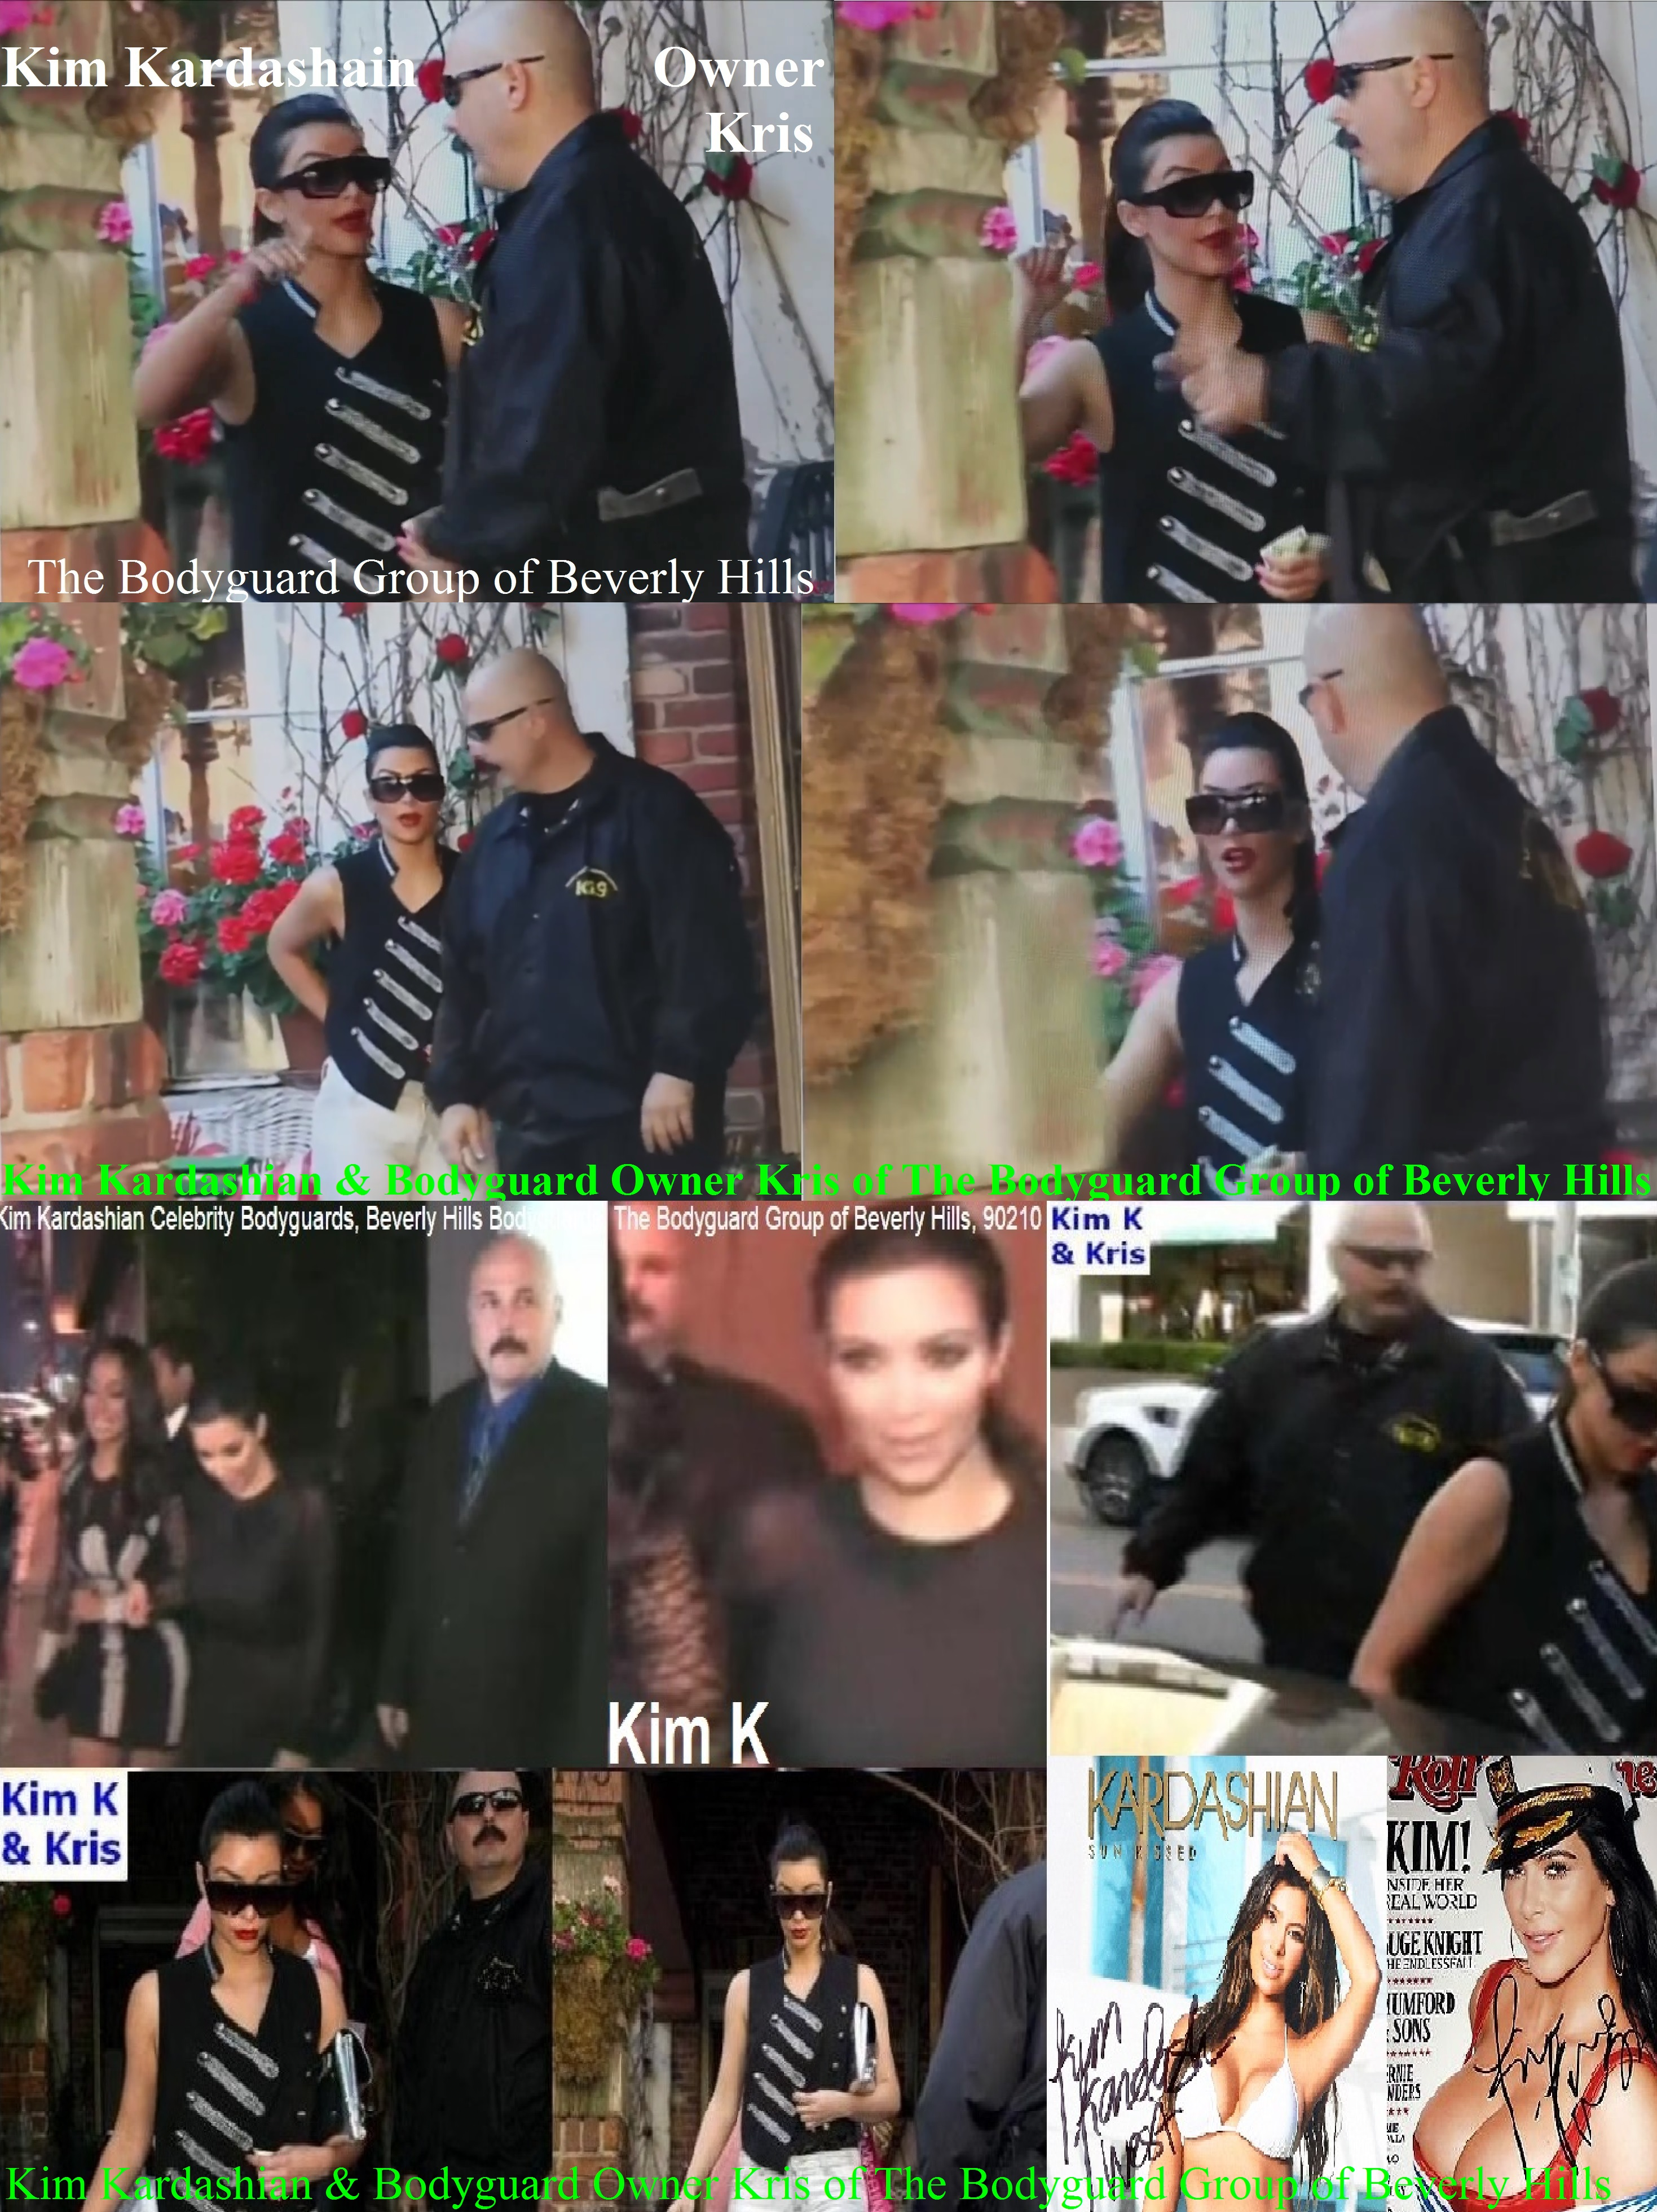 Kim Kardashian Bodyguard Famous celebrity bodyguard Kris Herzog of The Bodyguard Group of Beverly Hills, 90210, Los Angeles celebrity bodyguard for hire